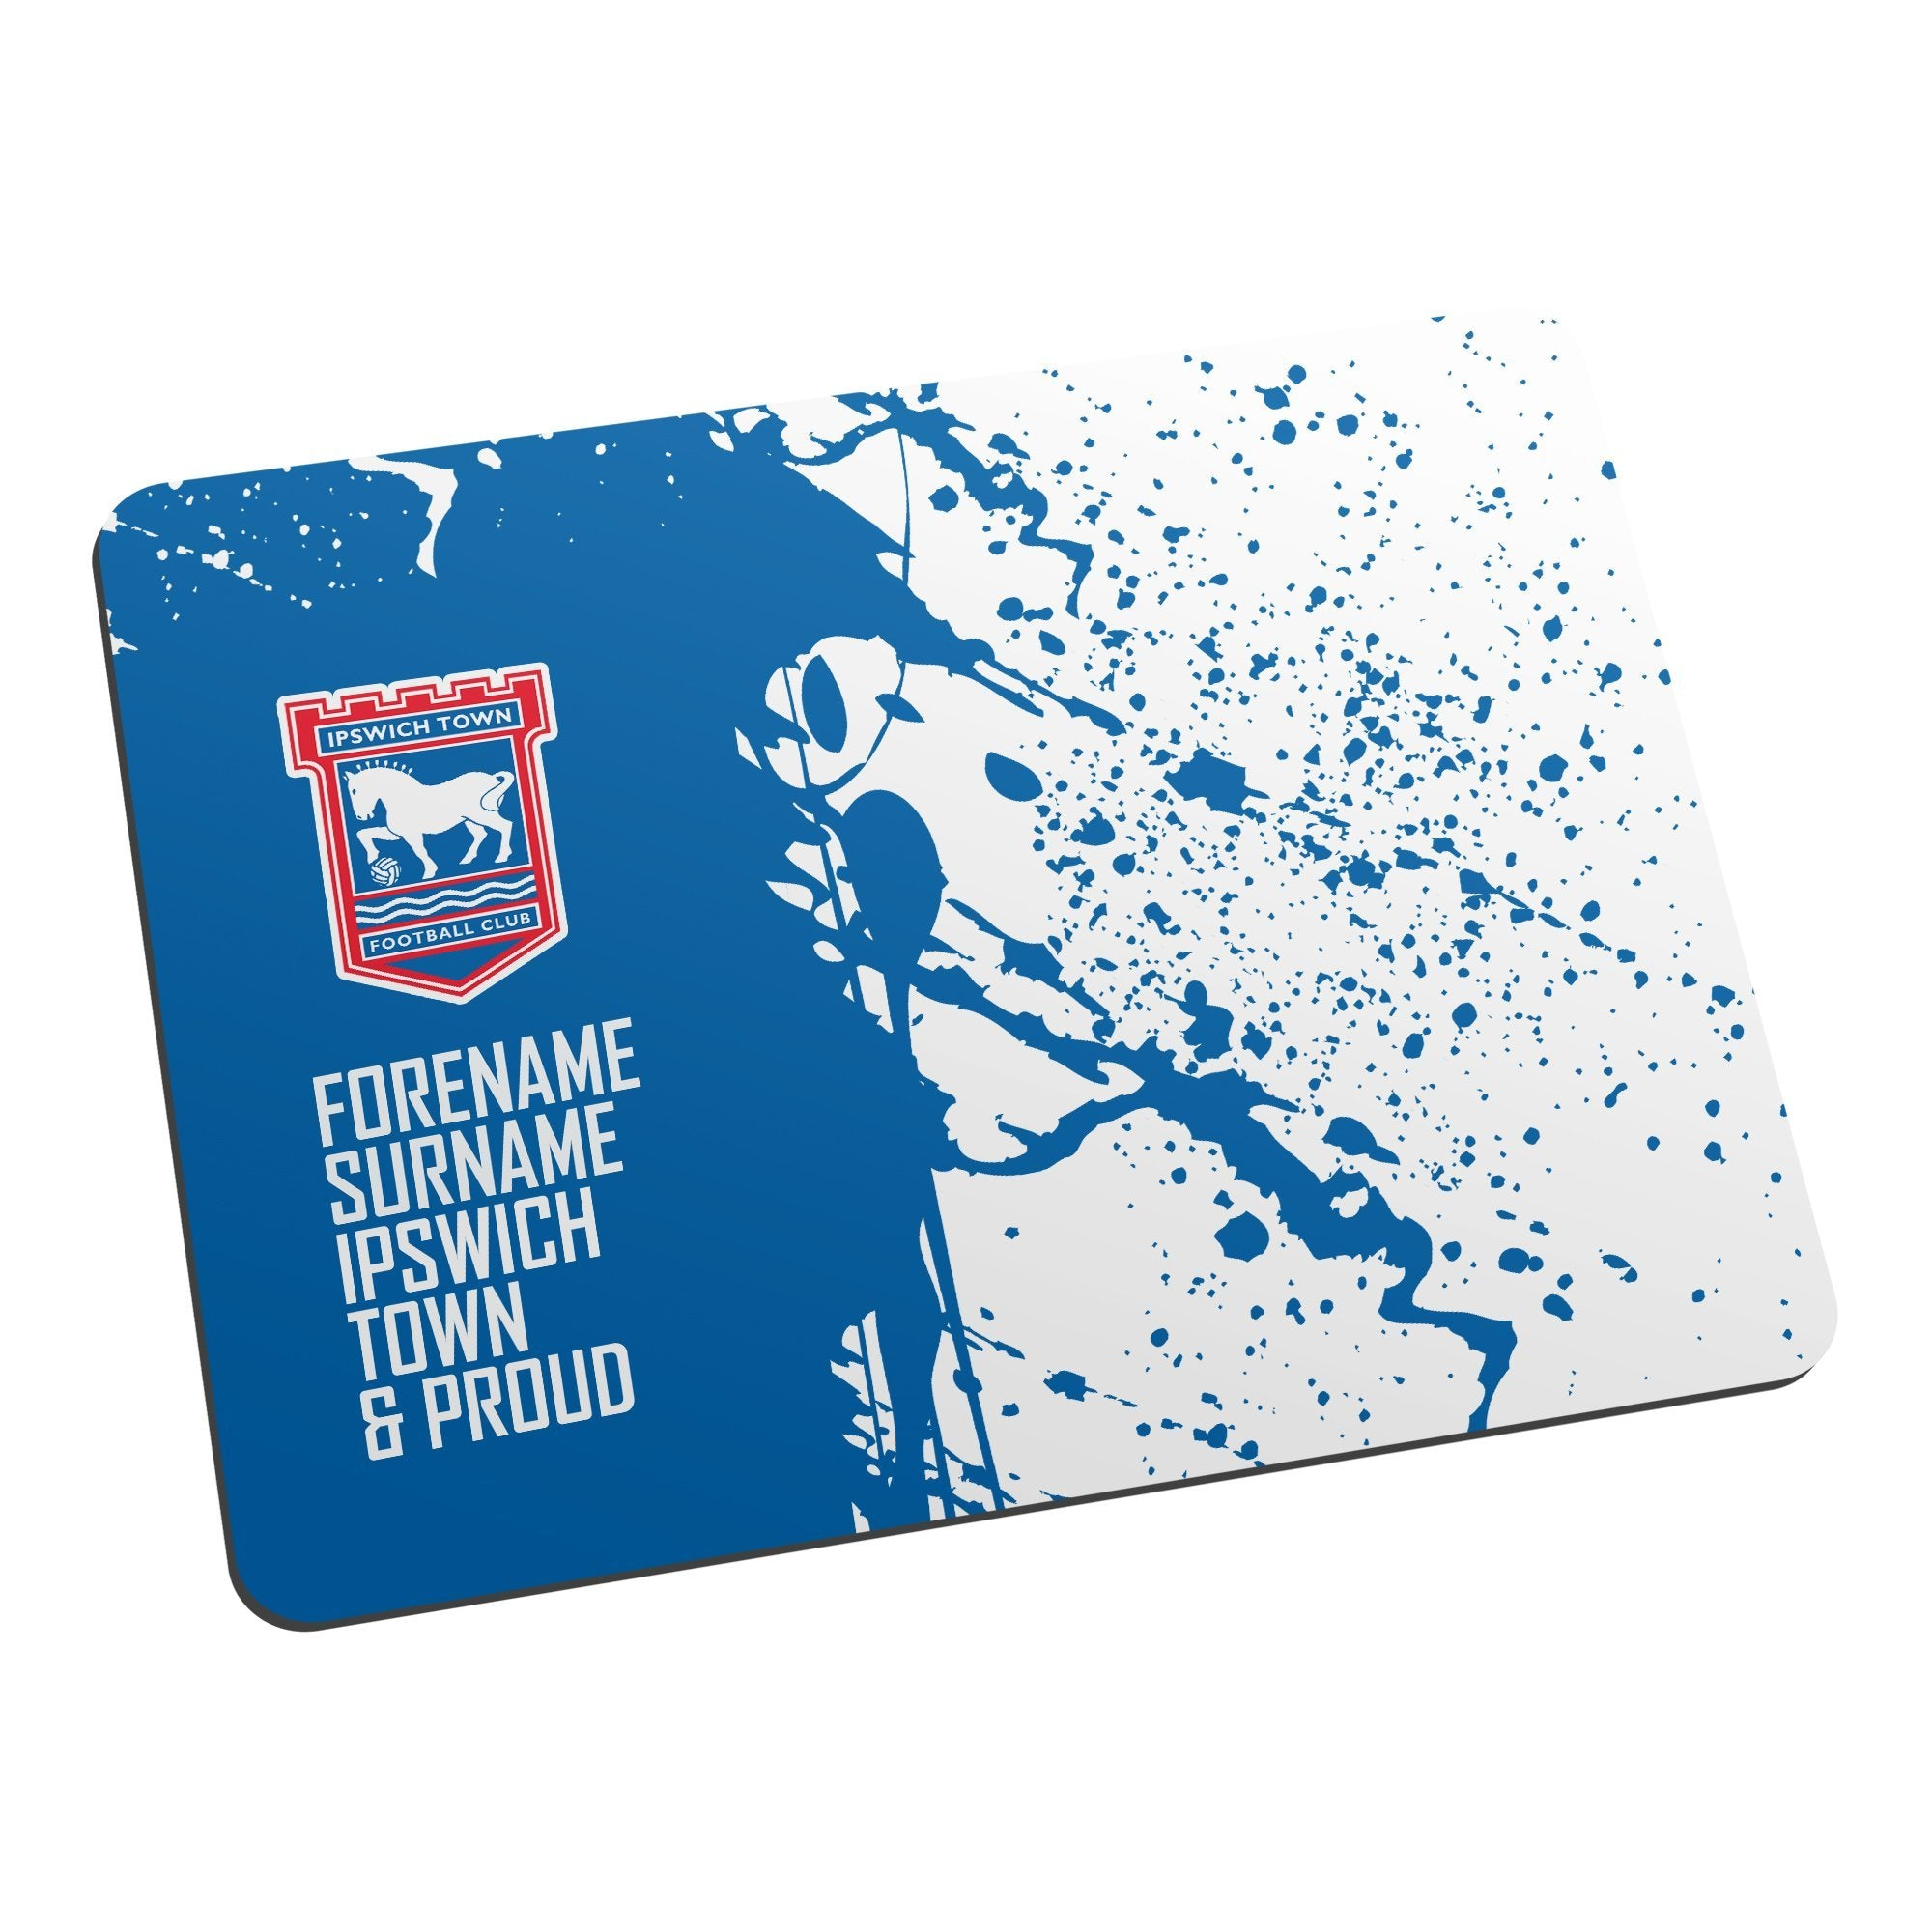 Personalised Ipswich Town FC Proud Mouse Mat, Electronics by Glamorous Gifts